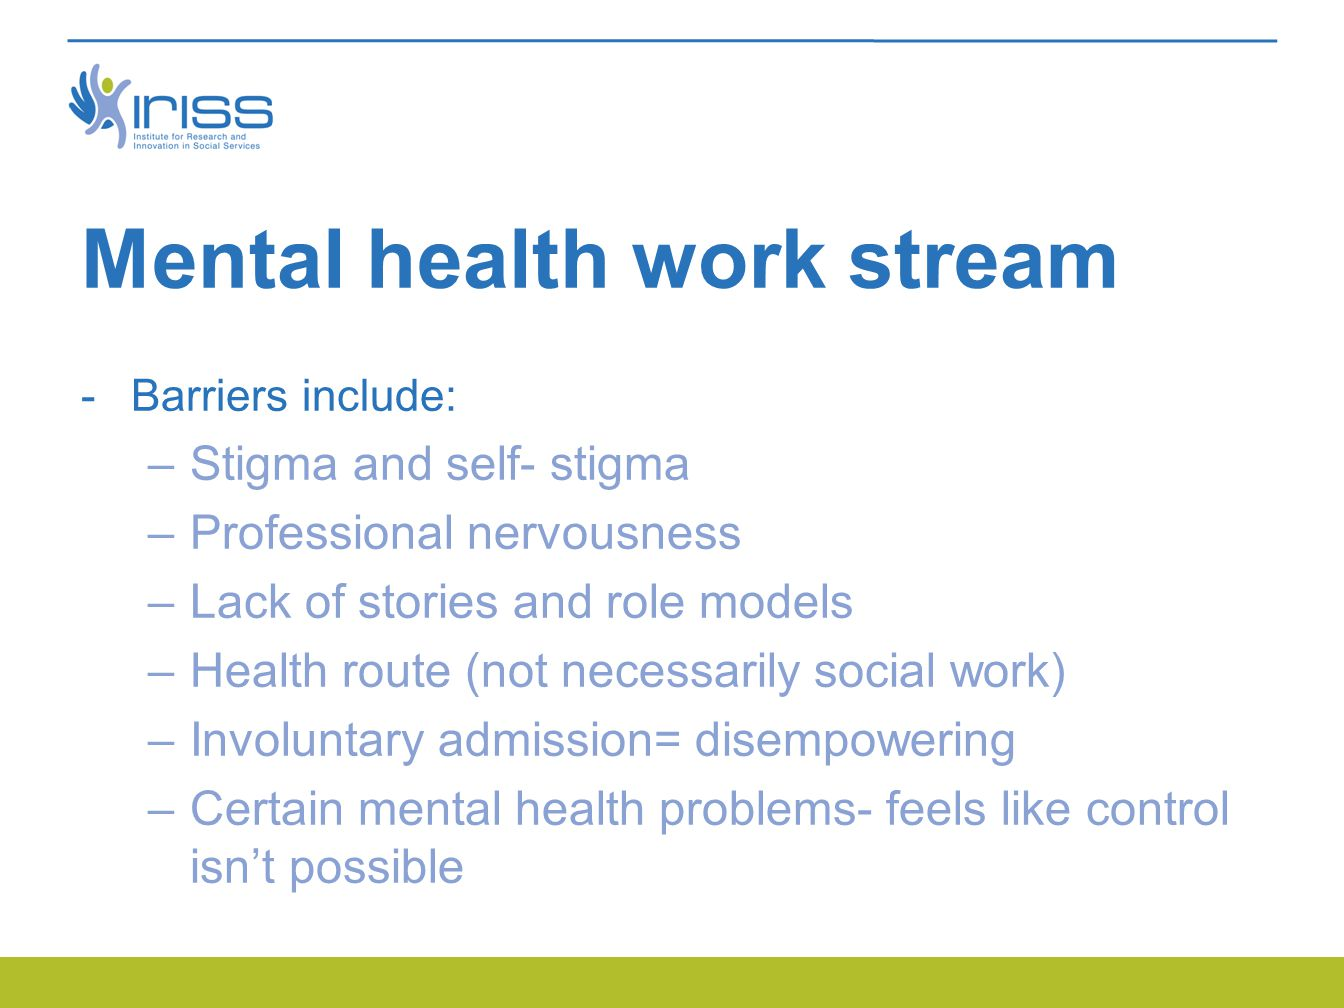 Mental health work stream  Barriers include: –Stigma and self- stigma –Professional nervousness –Lack of stories and role models –Health route (not necessarily social work) –Involuntary admission= disempowering –Certain mental health problems- feels like control isn't possible